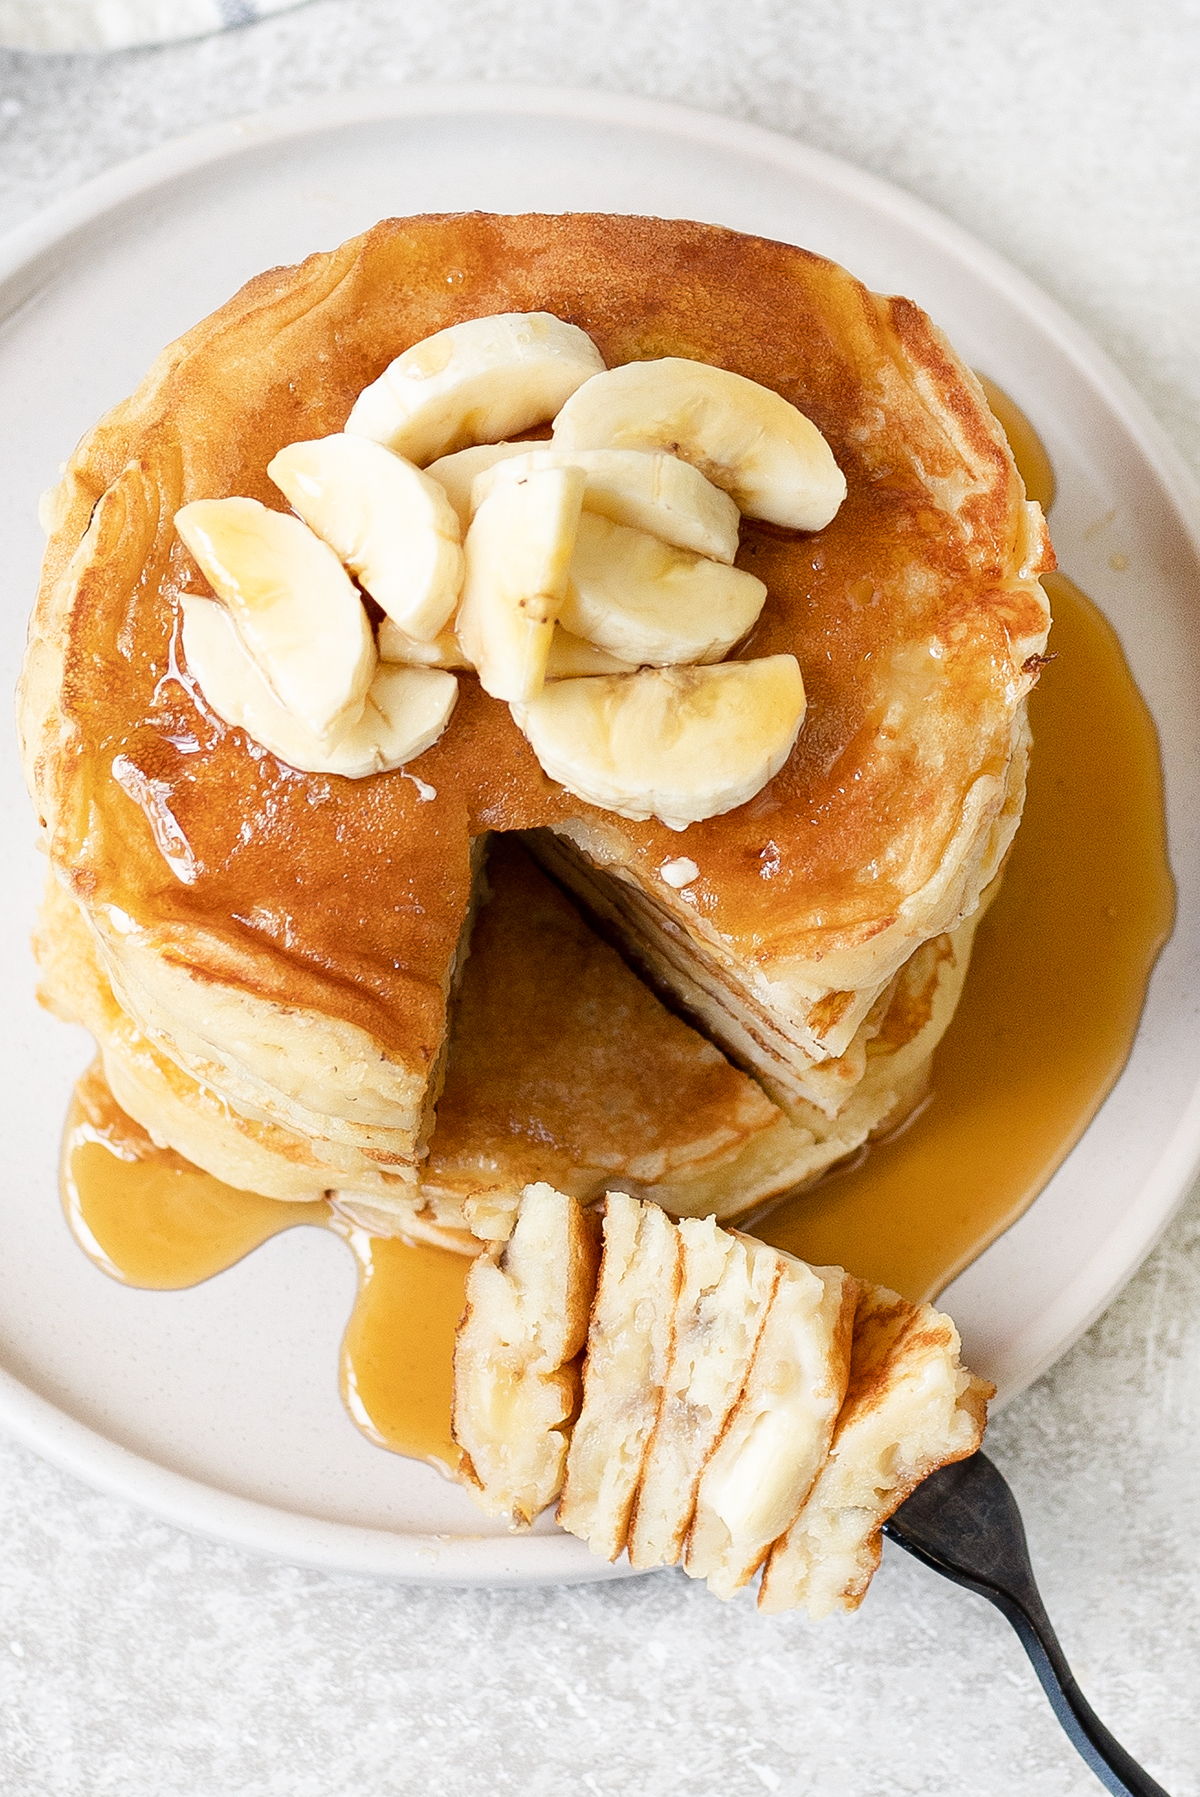 Sour Milk Pancakes with slices of banana